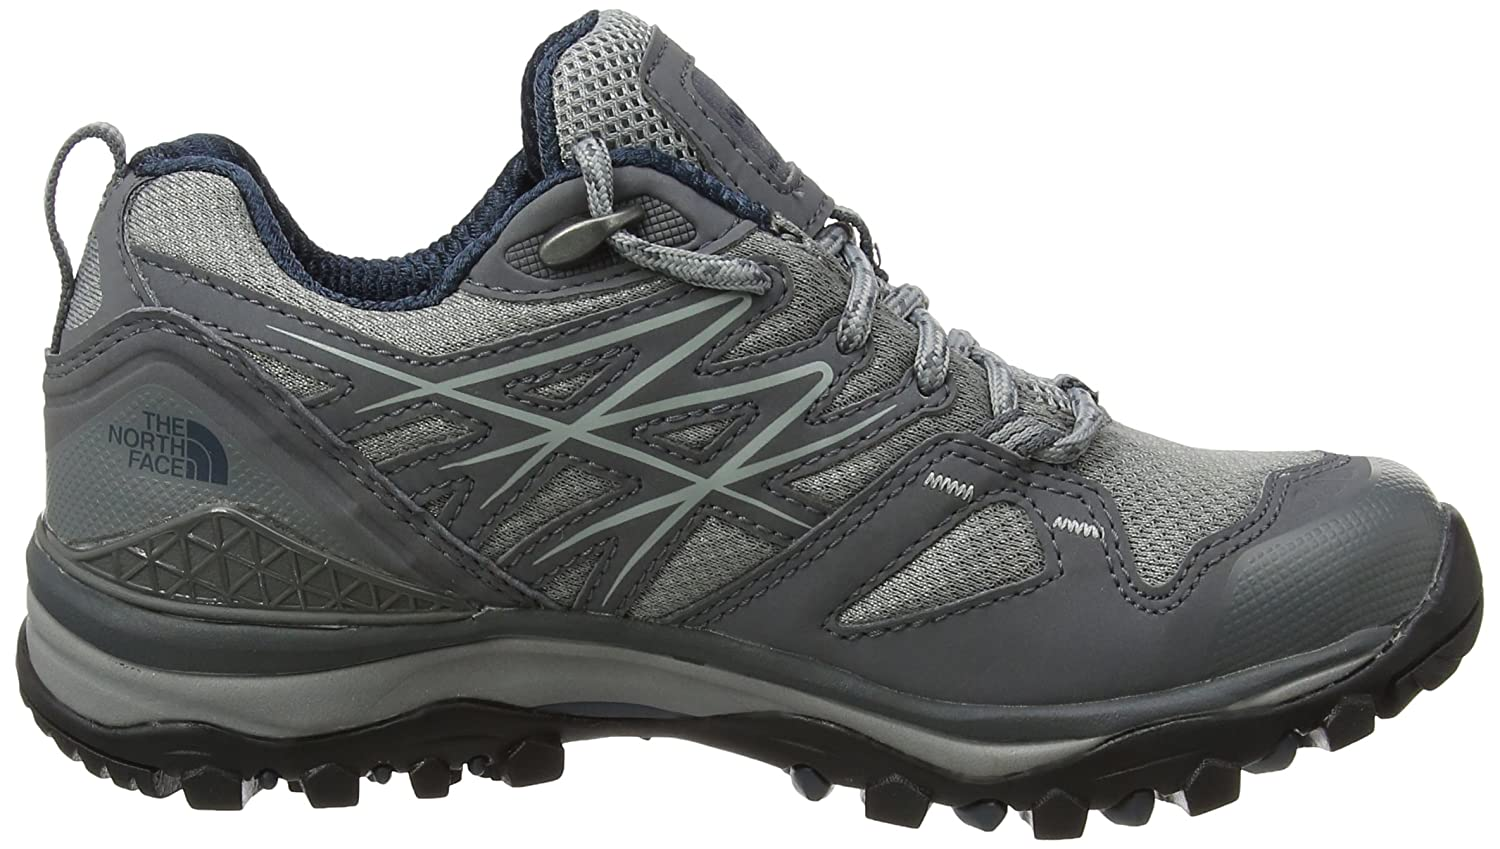 The North Face Damen Hedgehog Fastpack GTX (Eu) Trekking-& Wanderhalbschuhe, Mehrfarbig (Griffin Grey/Ink Blue), 41.5 EU